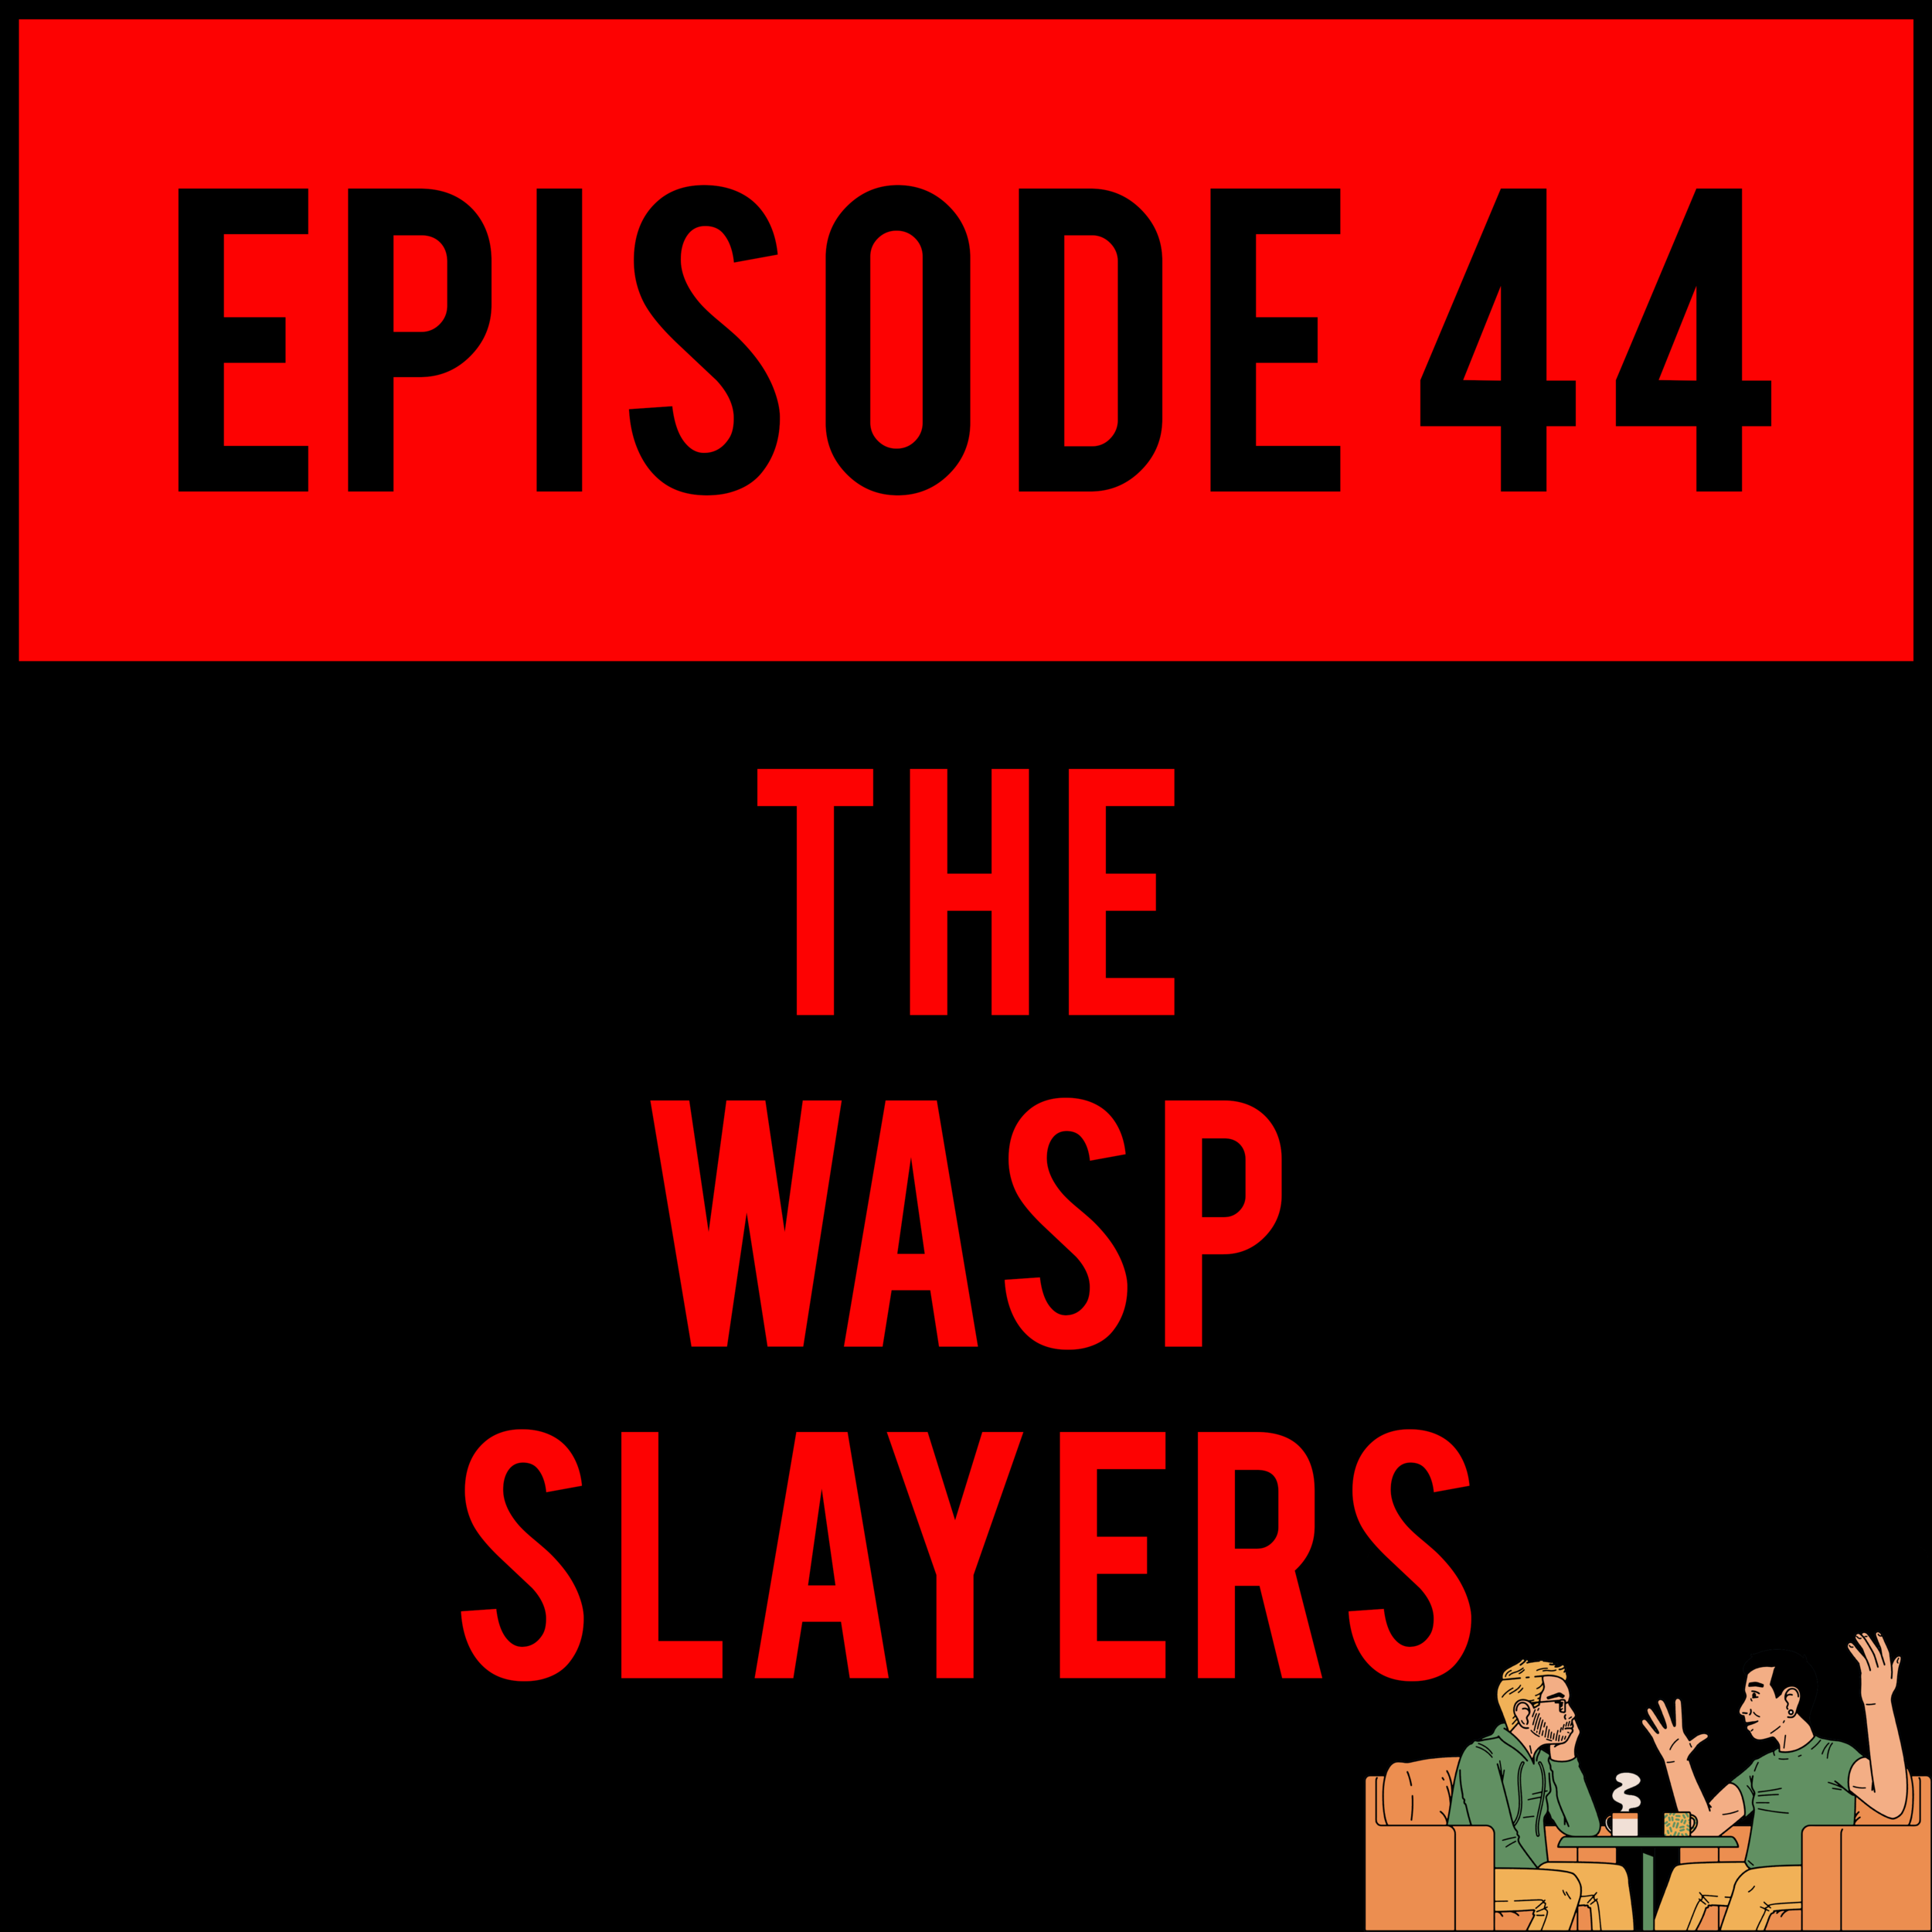 EPISODE 44 - Like dead bugs? Like slaying stuff? Then THE WASP SLAYERS - EPISODE 44 is for YOU. Check it out so hard.